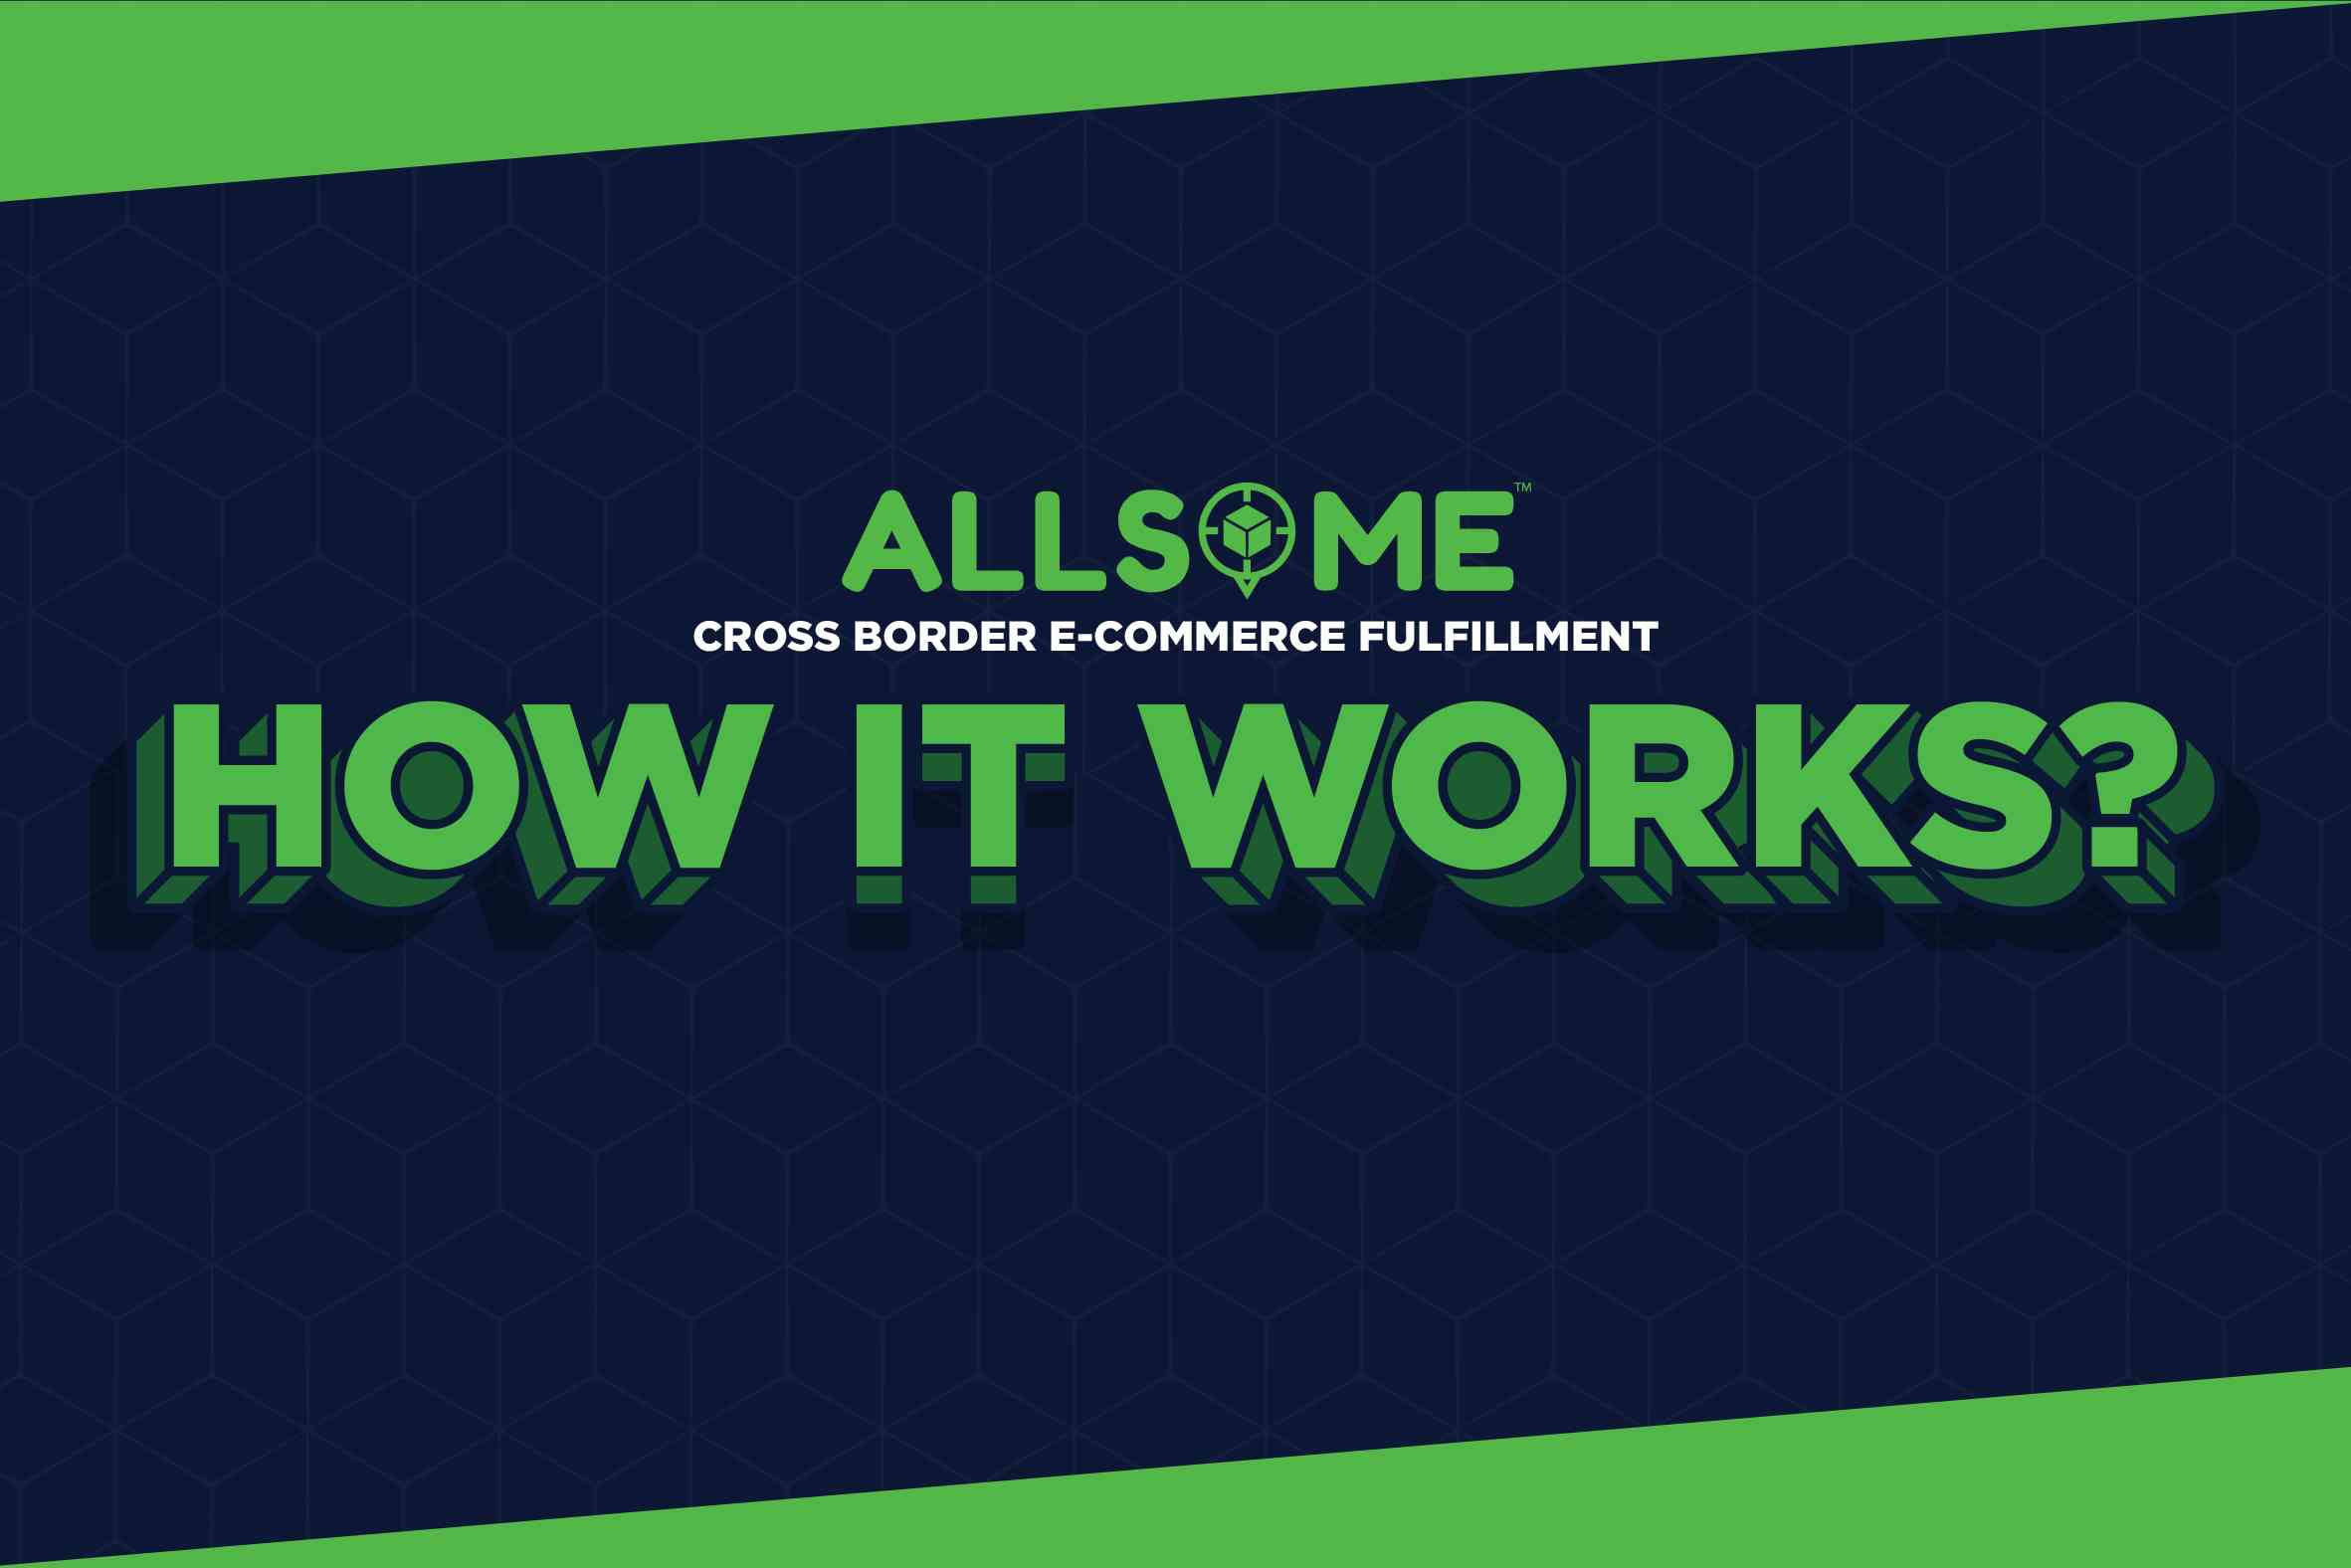 AllSome Fulfillment - How It Works Video